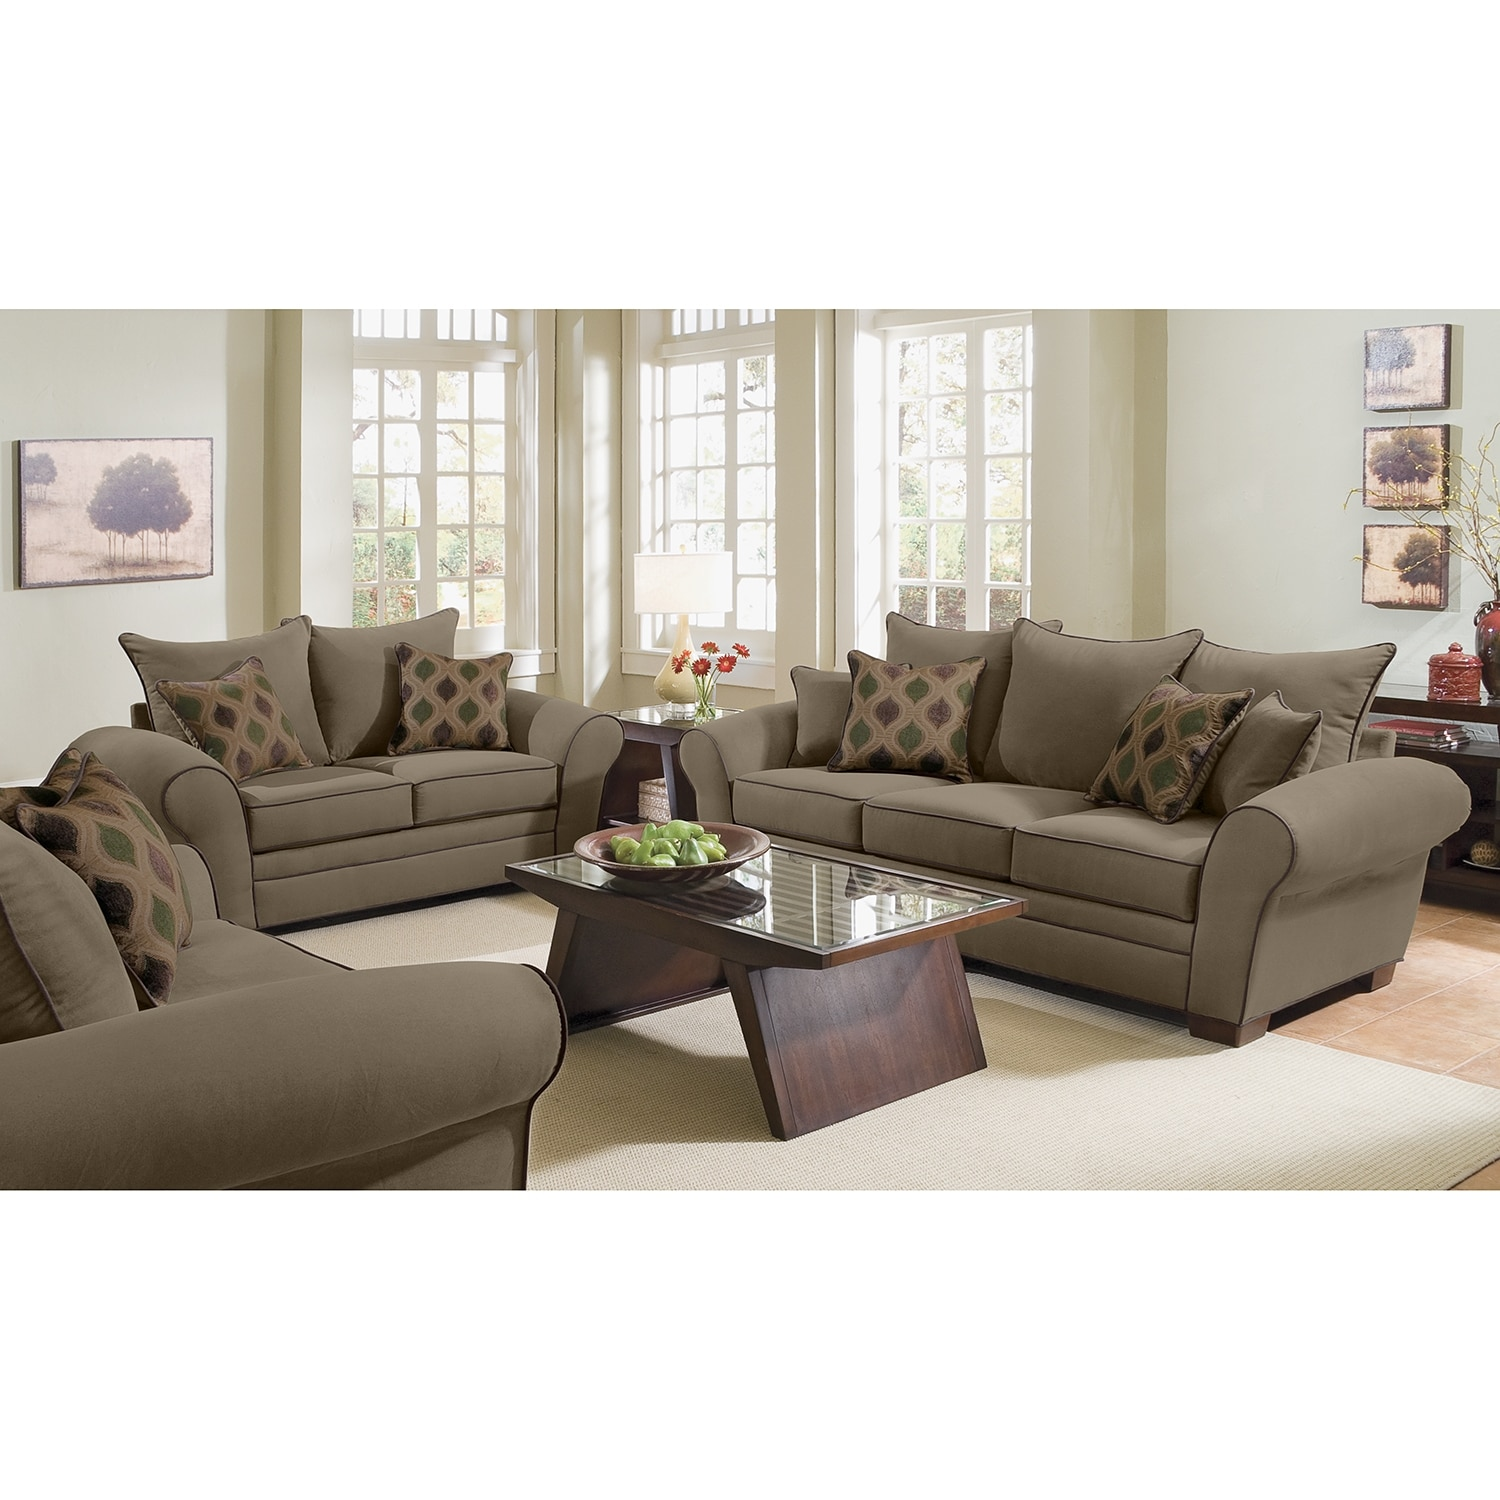 rendezvous sofa and loveseat set olive by kroehler - Kroehler Furniture